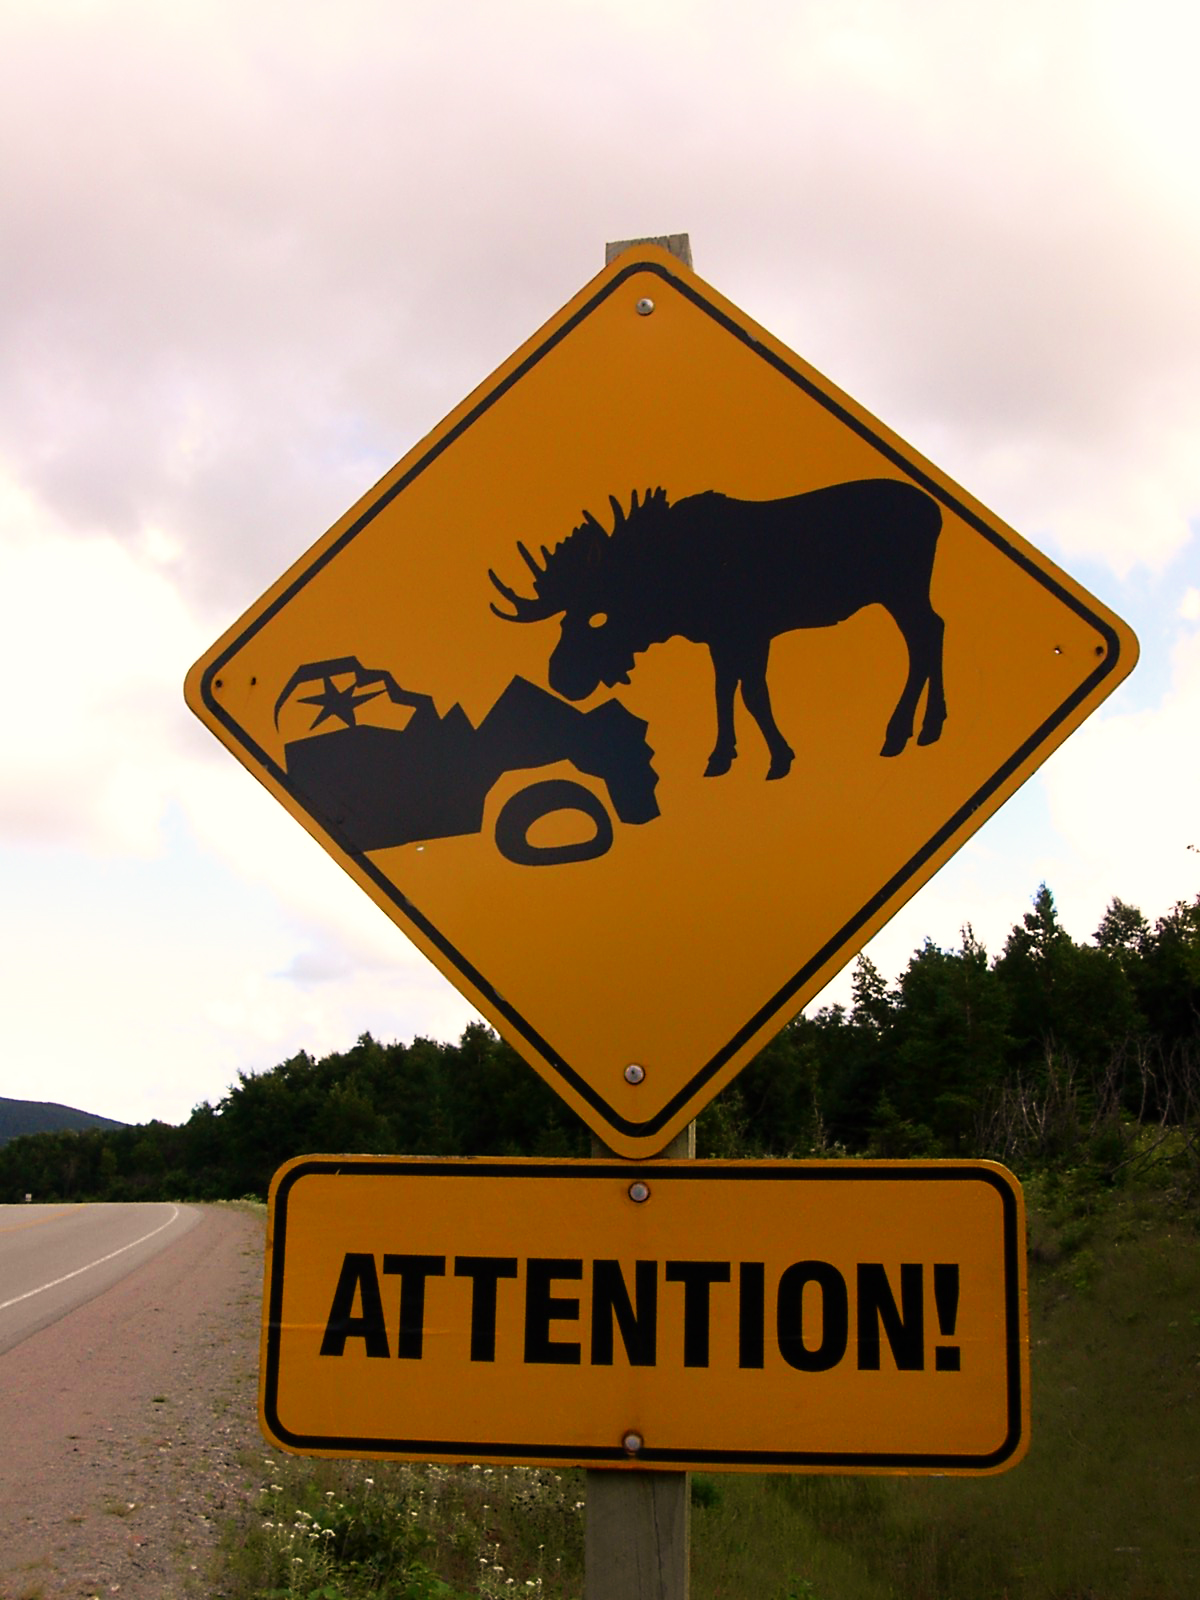 All Road Signs >> The World through Road Signs